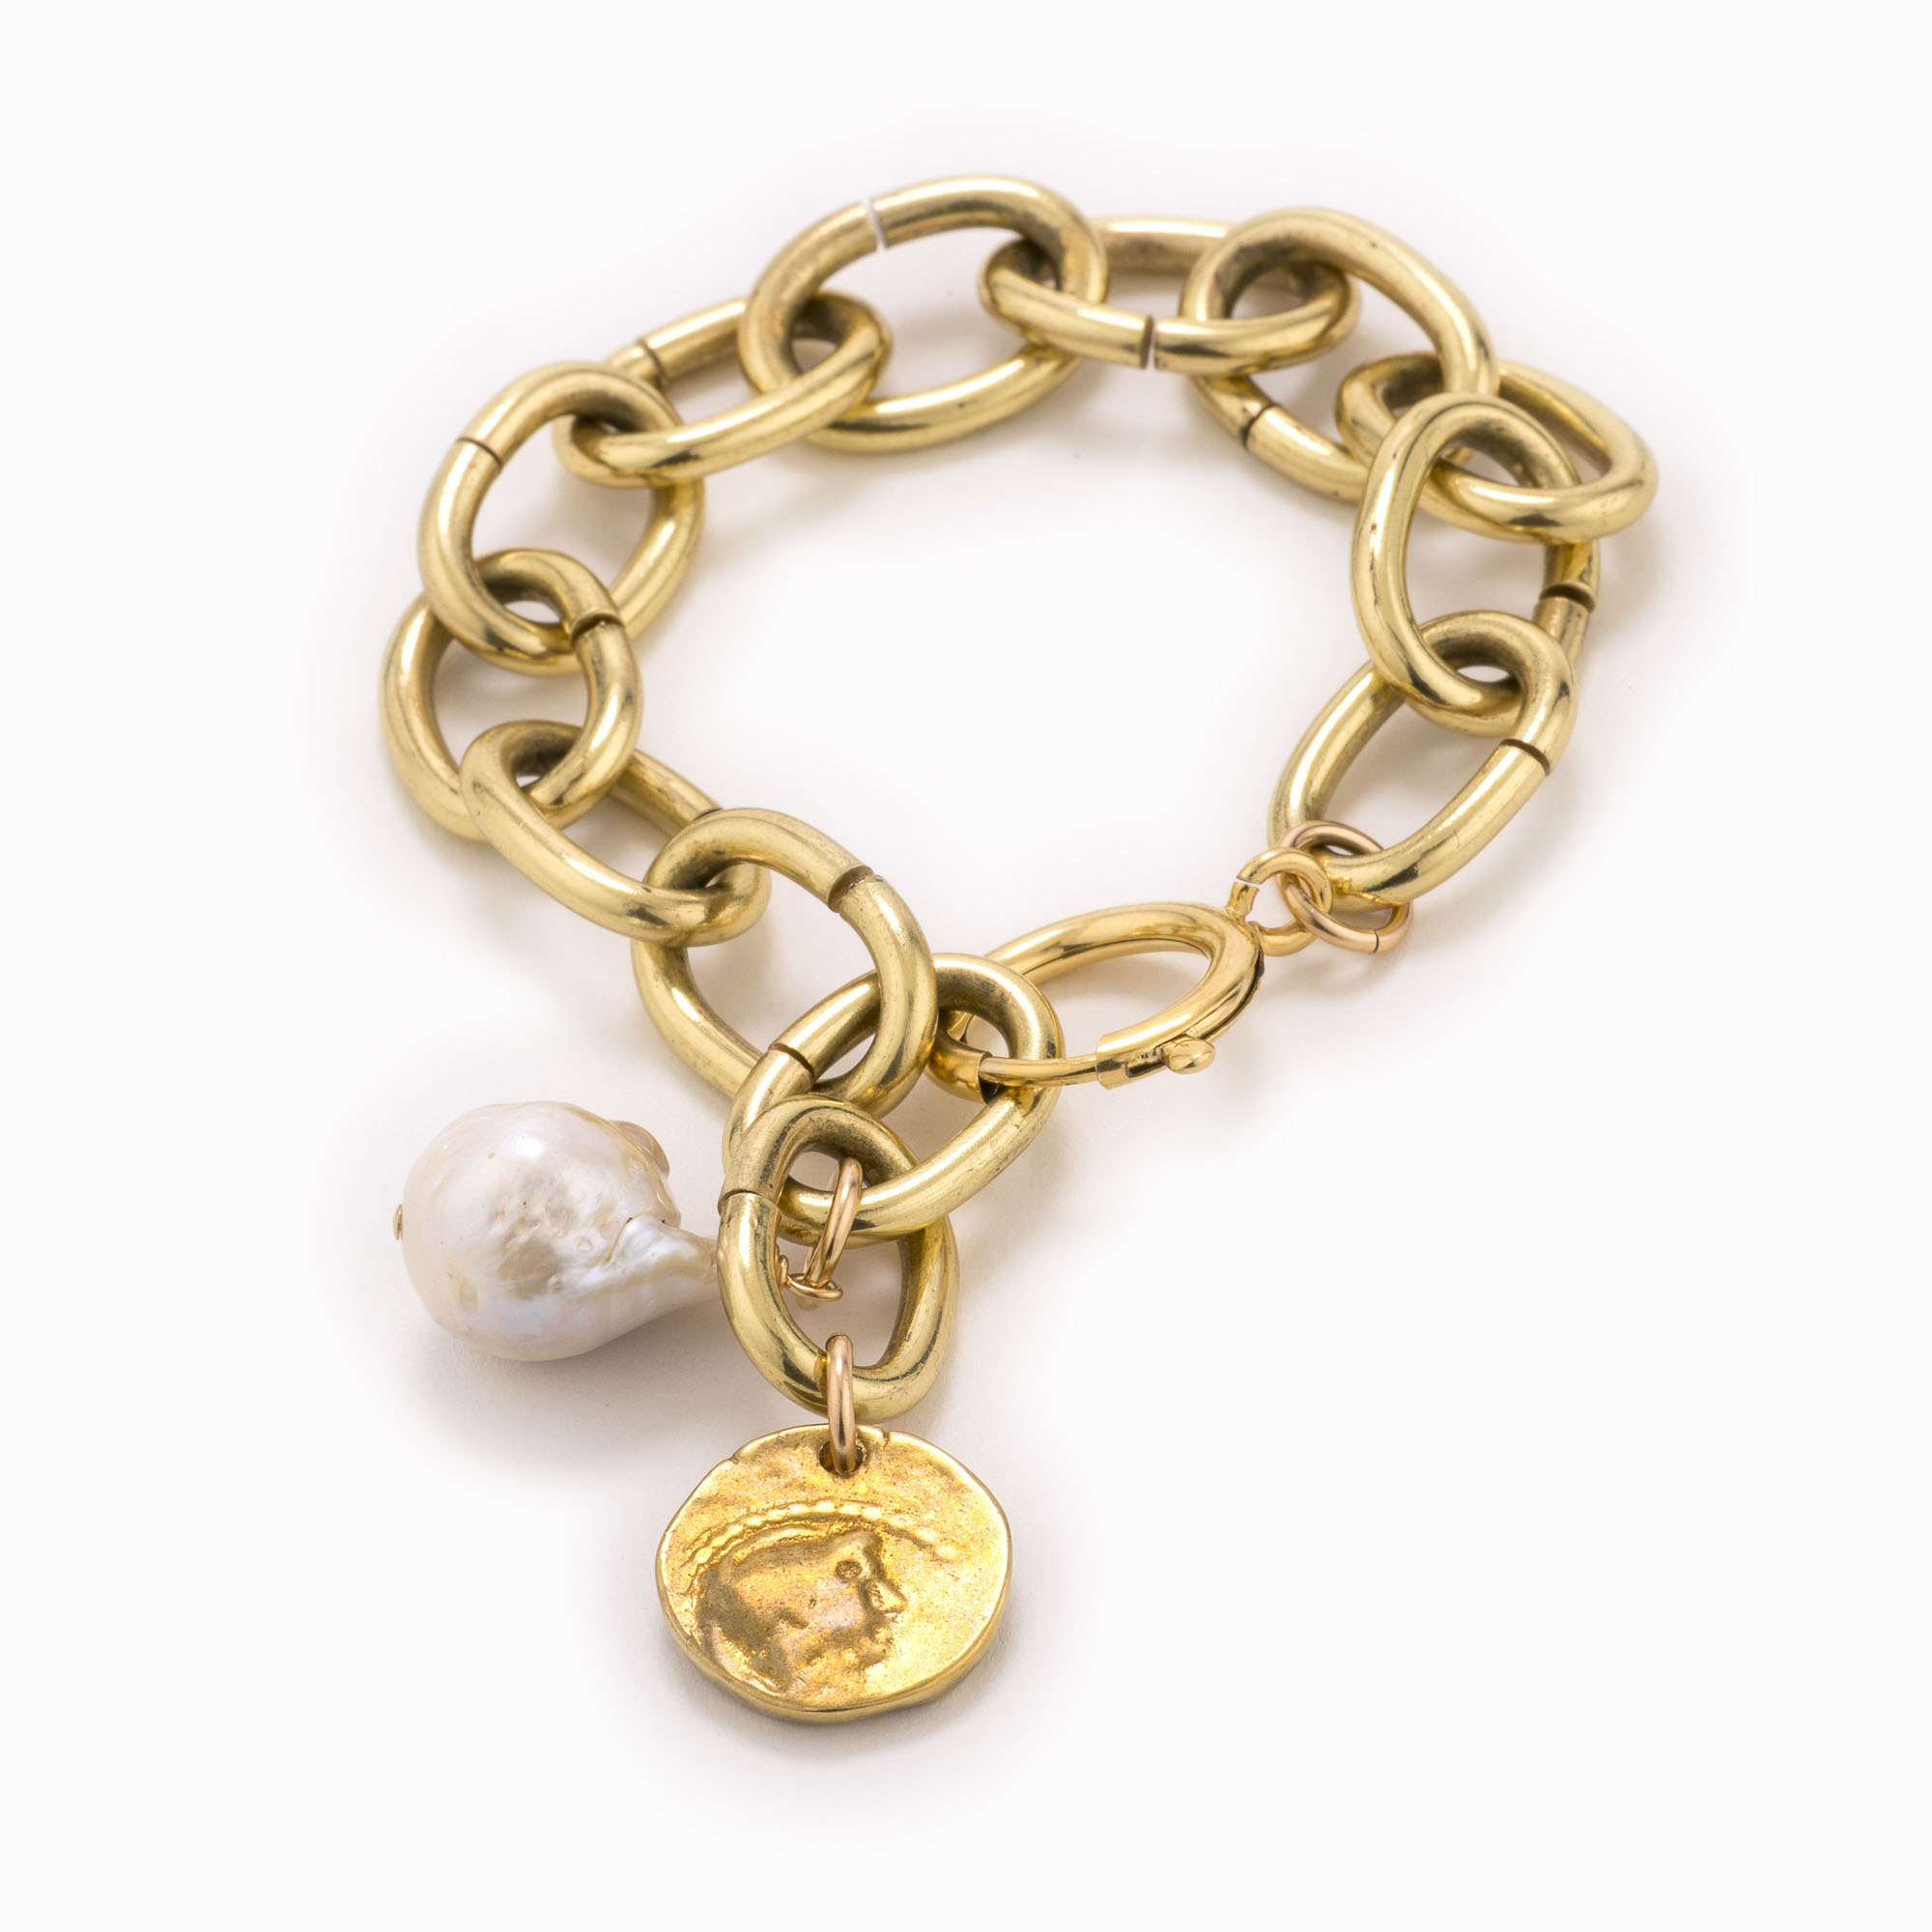 An adjustable, large brass chain bracelet with coin and white pearl.